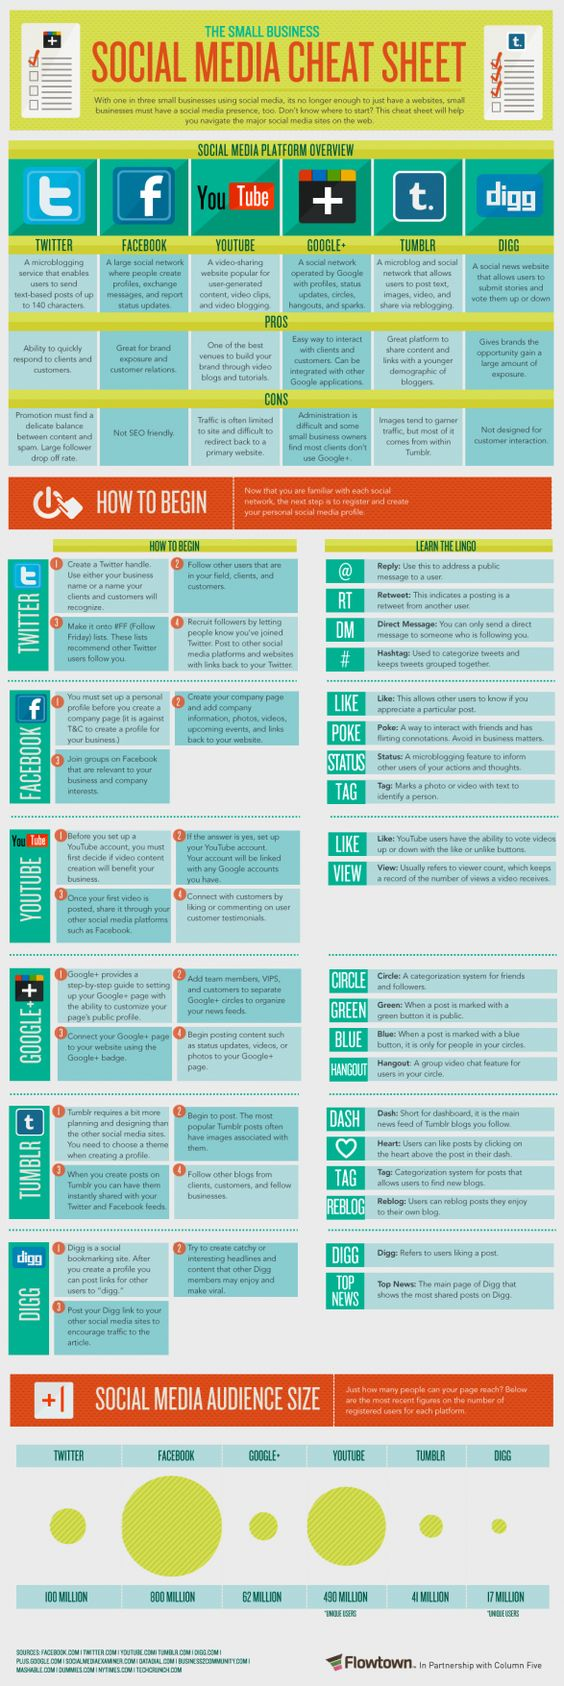 The Small Business Social Media Cheat Sheet.      With one in three small businesses using social media, its no longer enough to just have a website, small businesses must have a social media presence, too. Don't know where to start? This cheat sheet will help you navigate the major social media sites on the web.